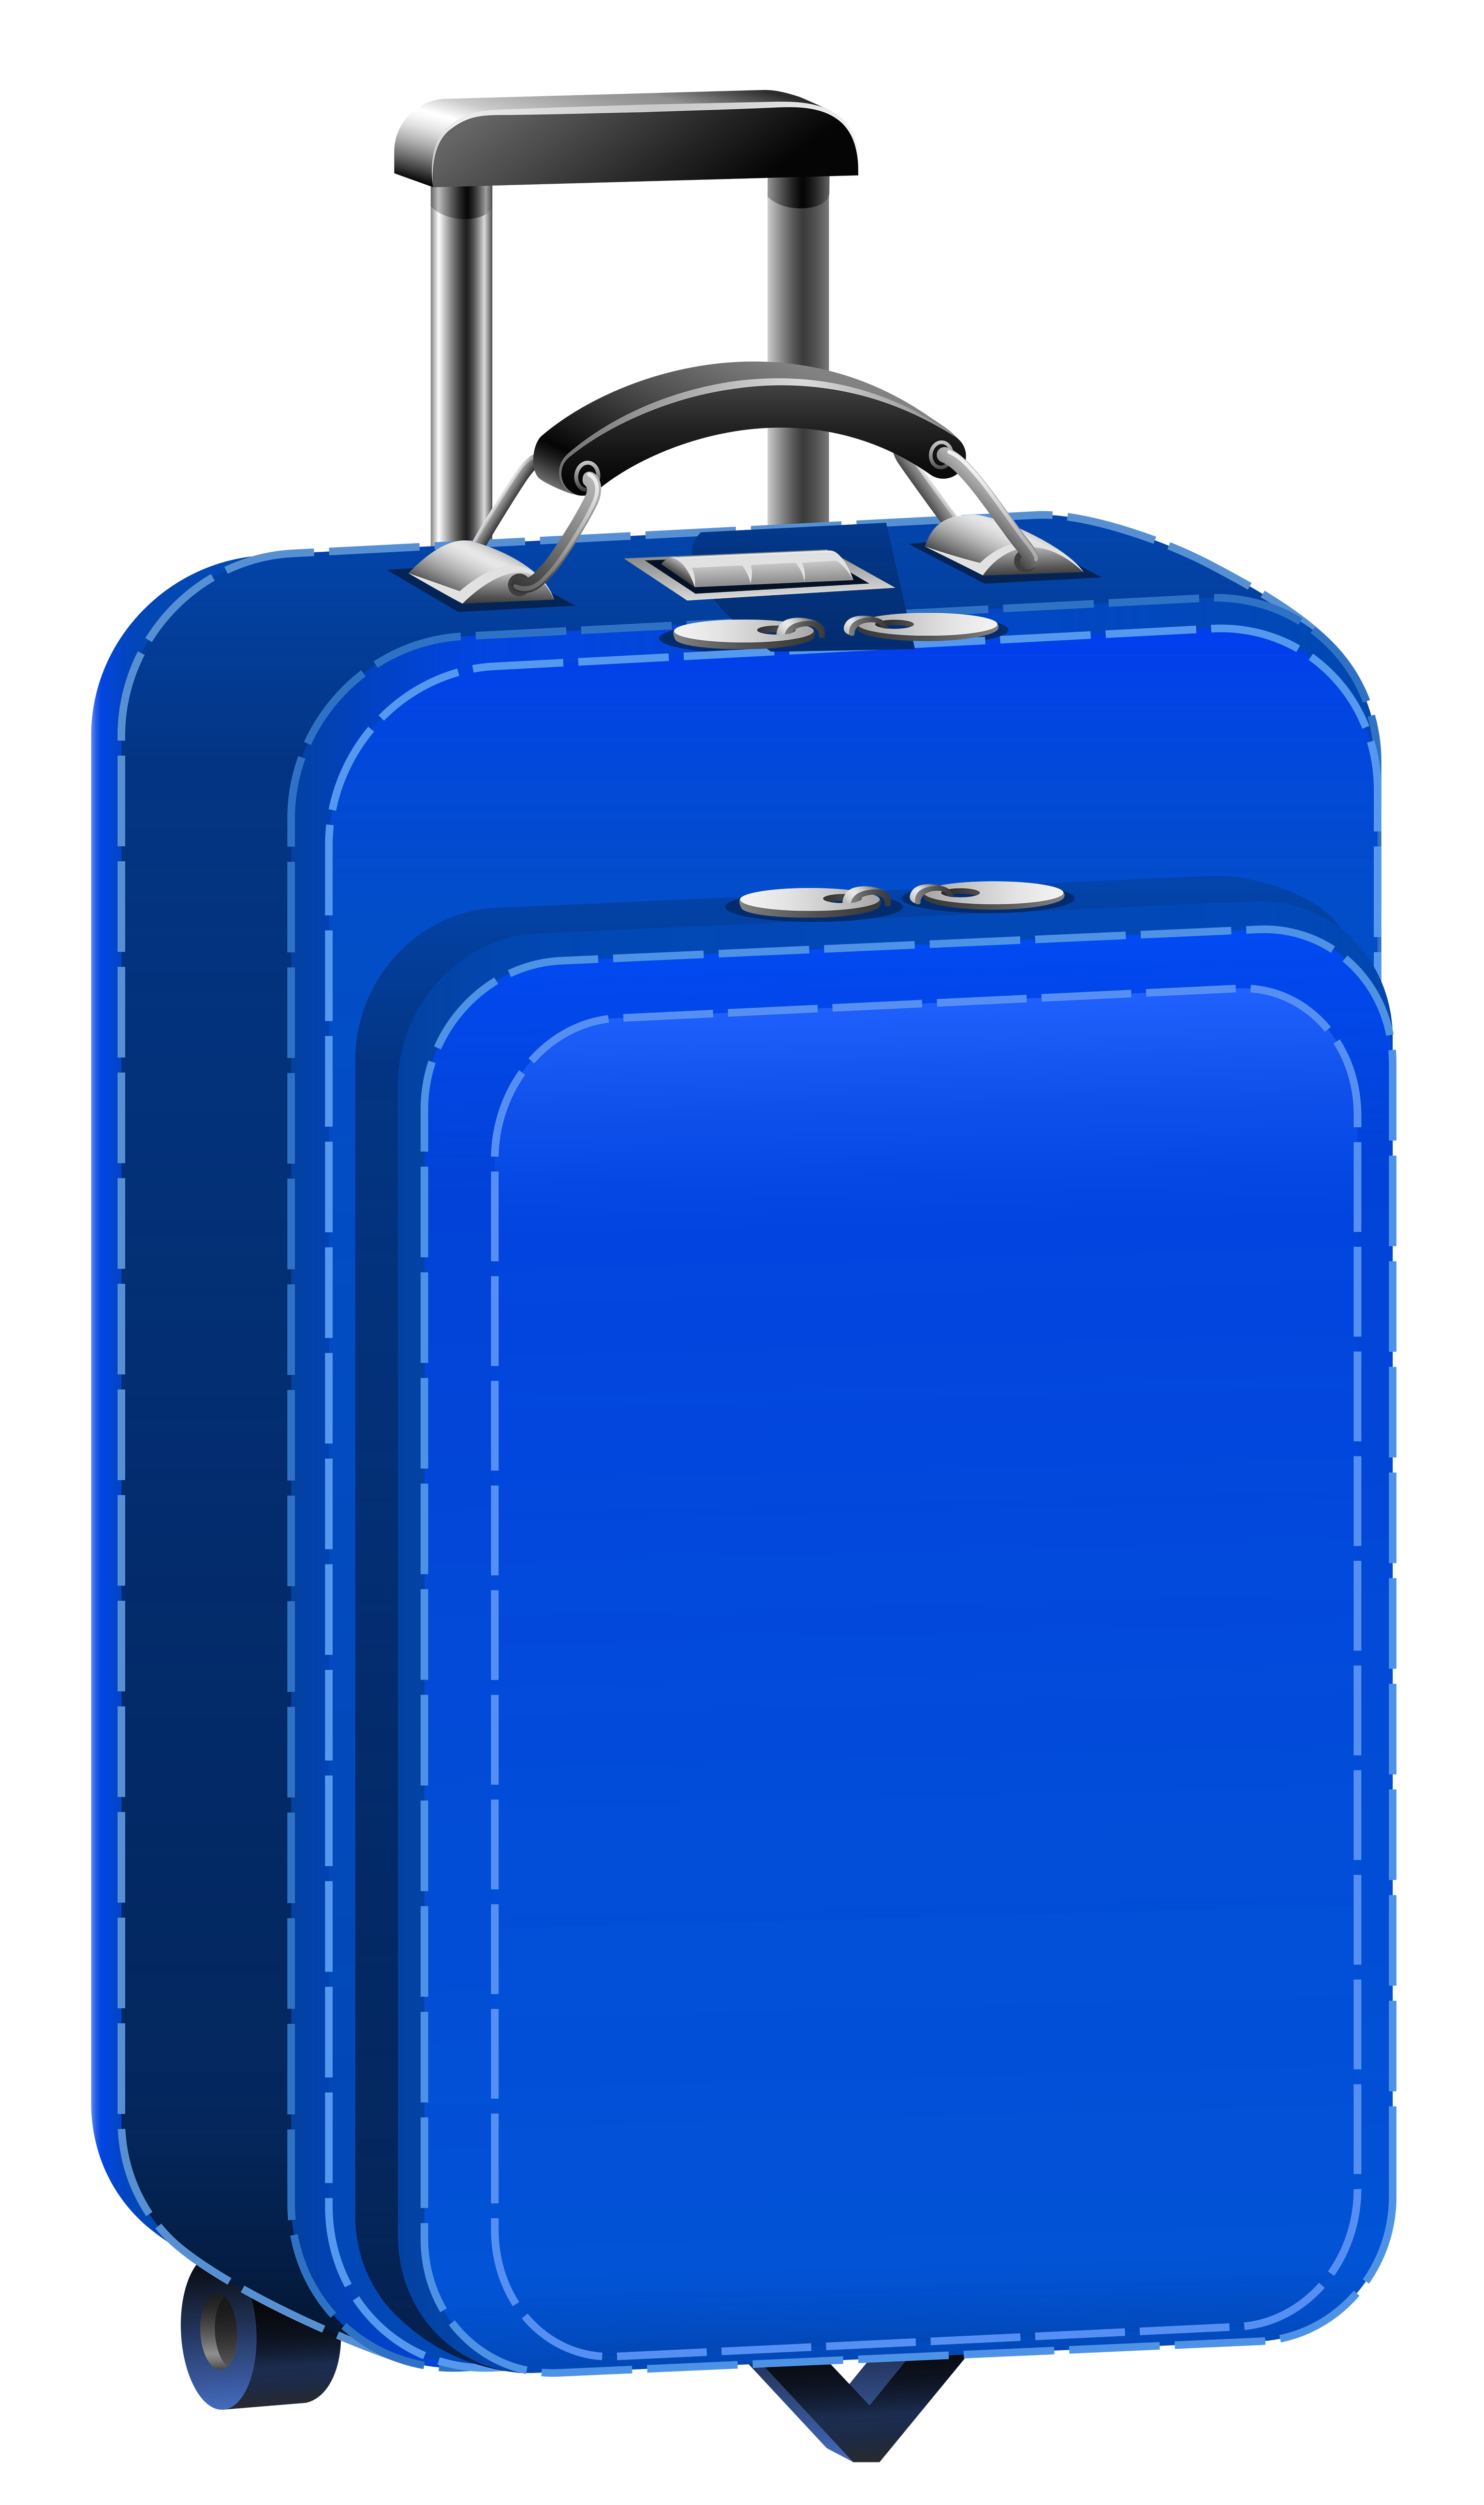 banner black and white Blue bag png picture. Briefcase clipart travel case.